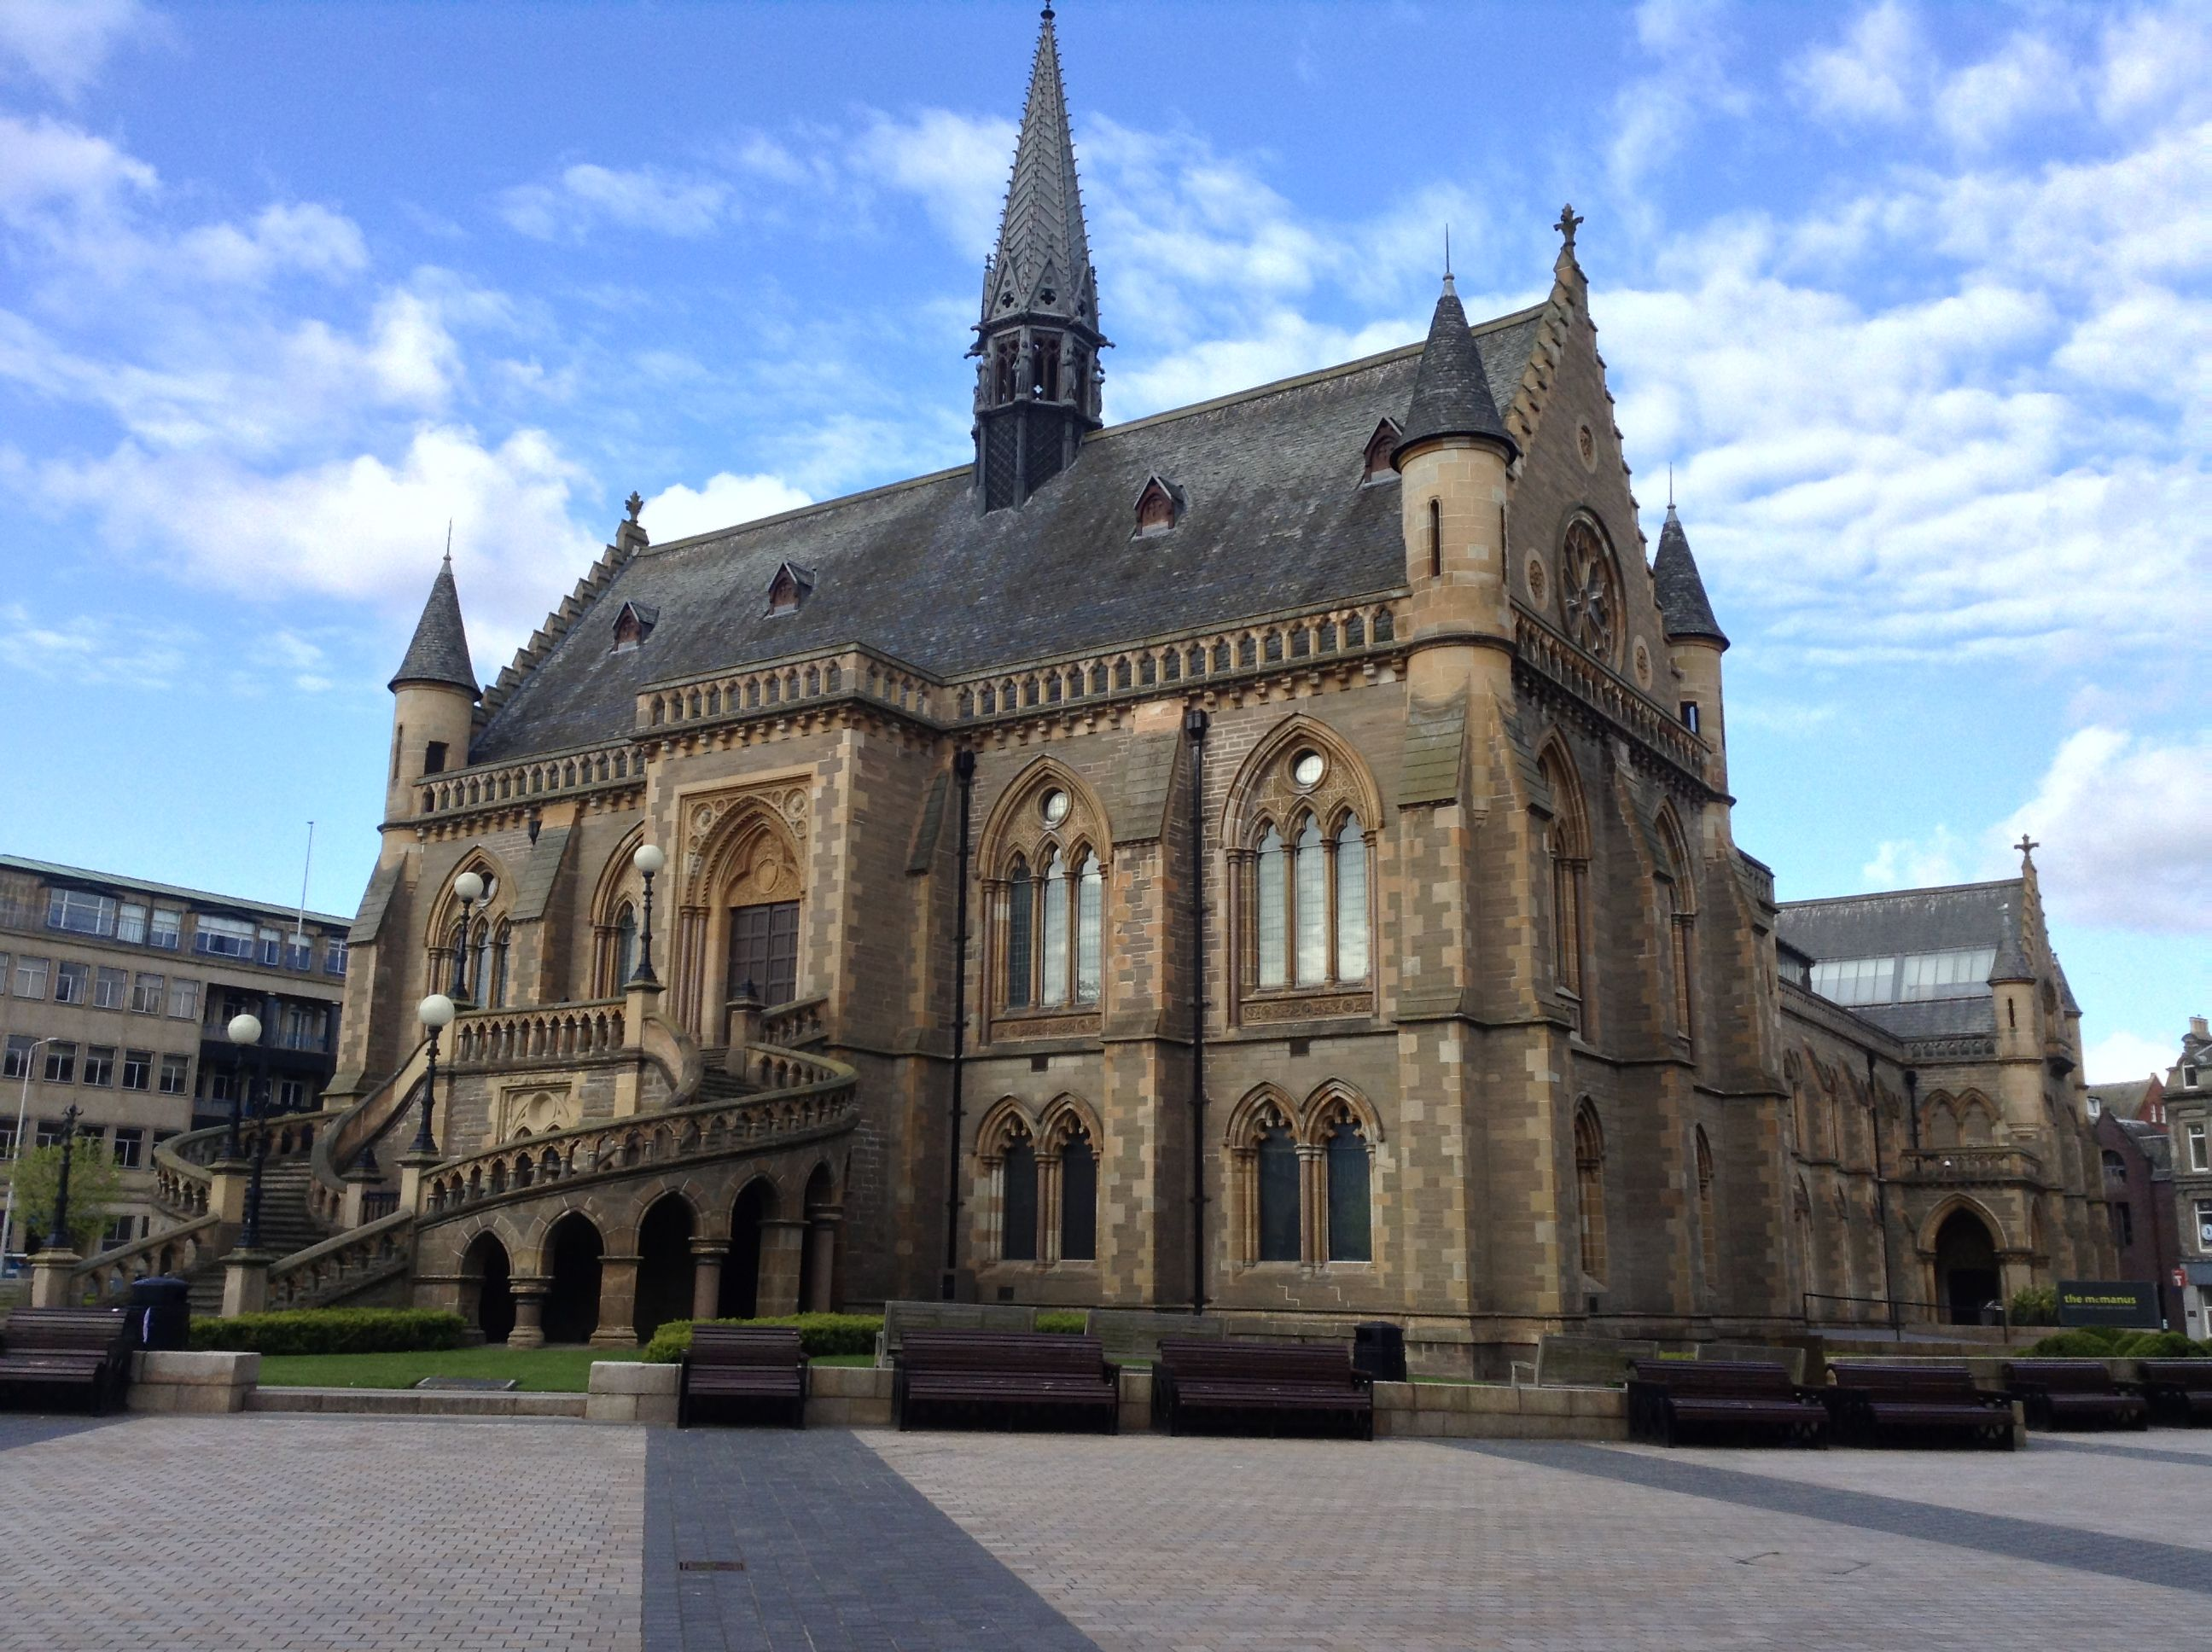 Dundee in Angus, Angus